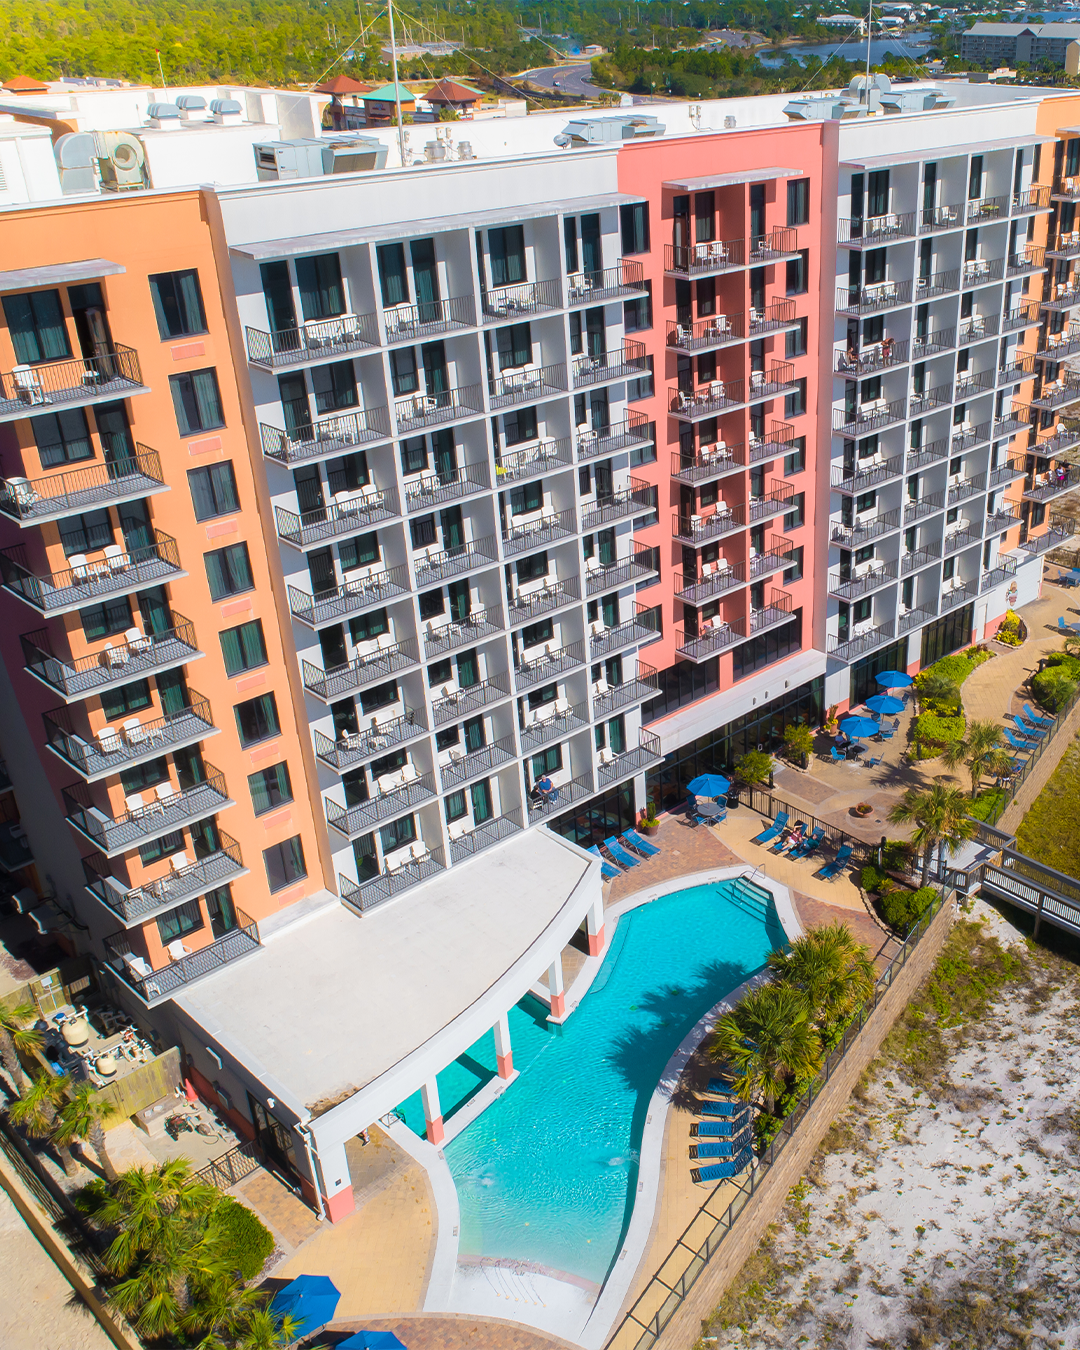 Whether By The Pool Or On The Beach Dip Into Unforgettable Memories At The Hampton Inn Orange Beach Hotels Hampton Inn Orange Beach Alabama